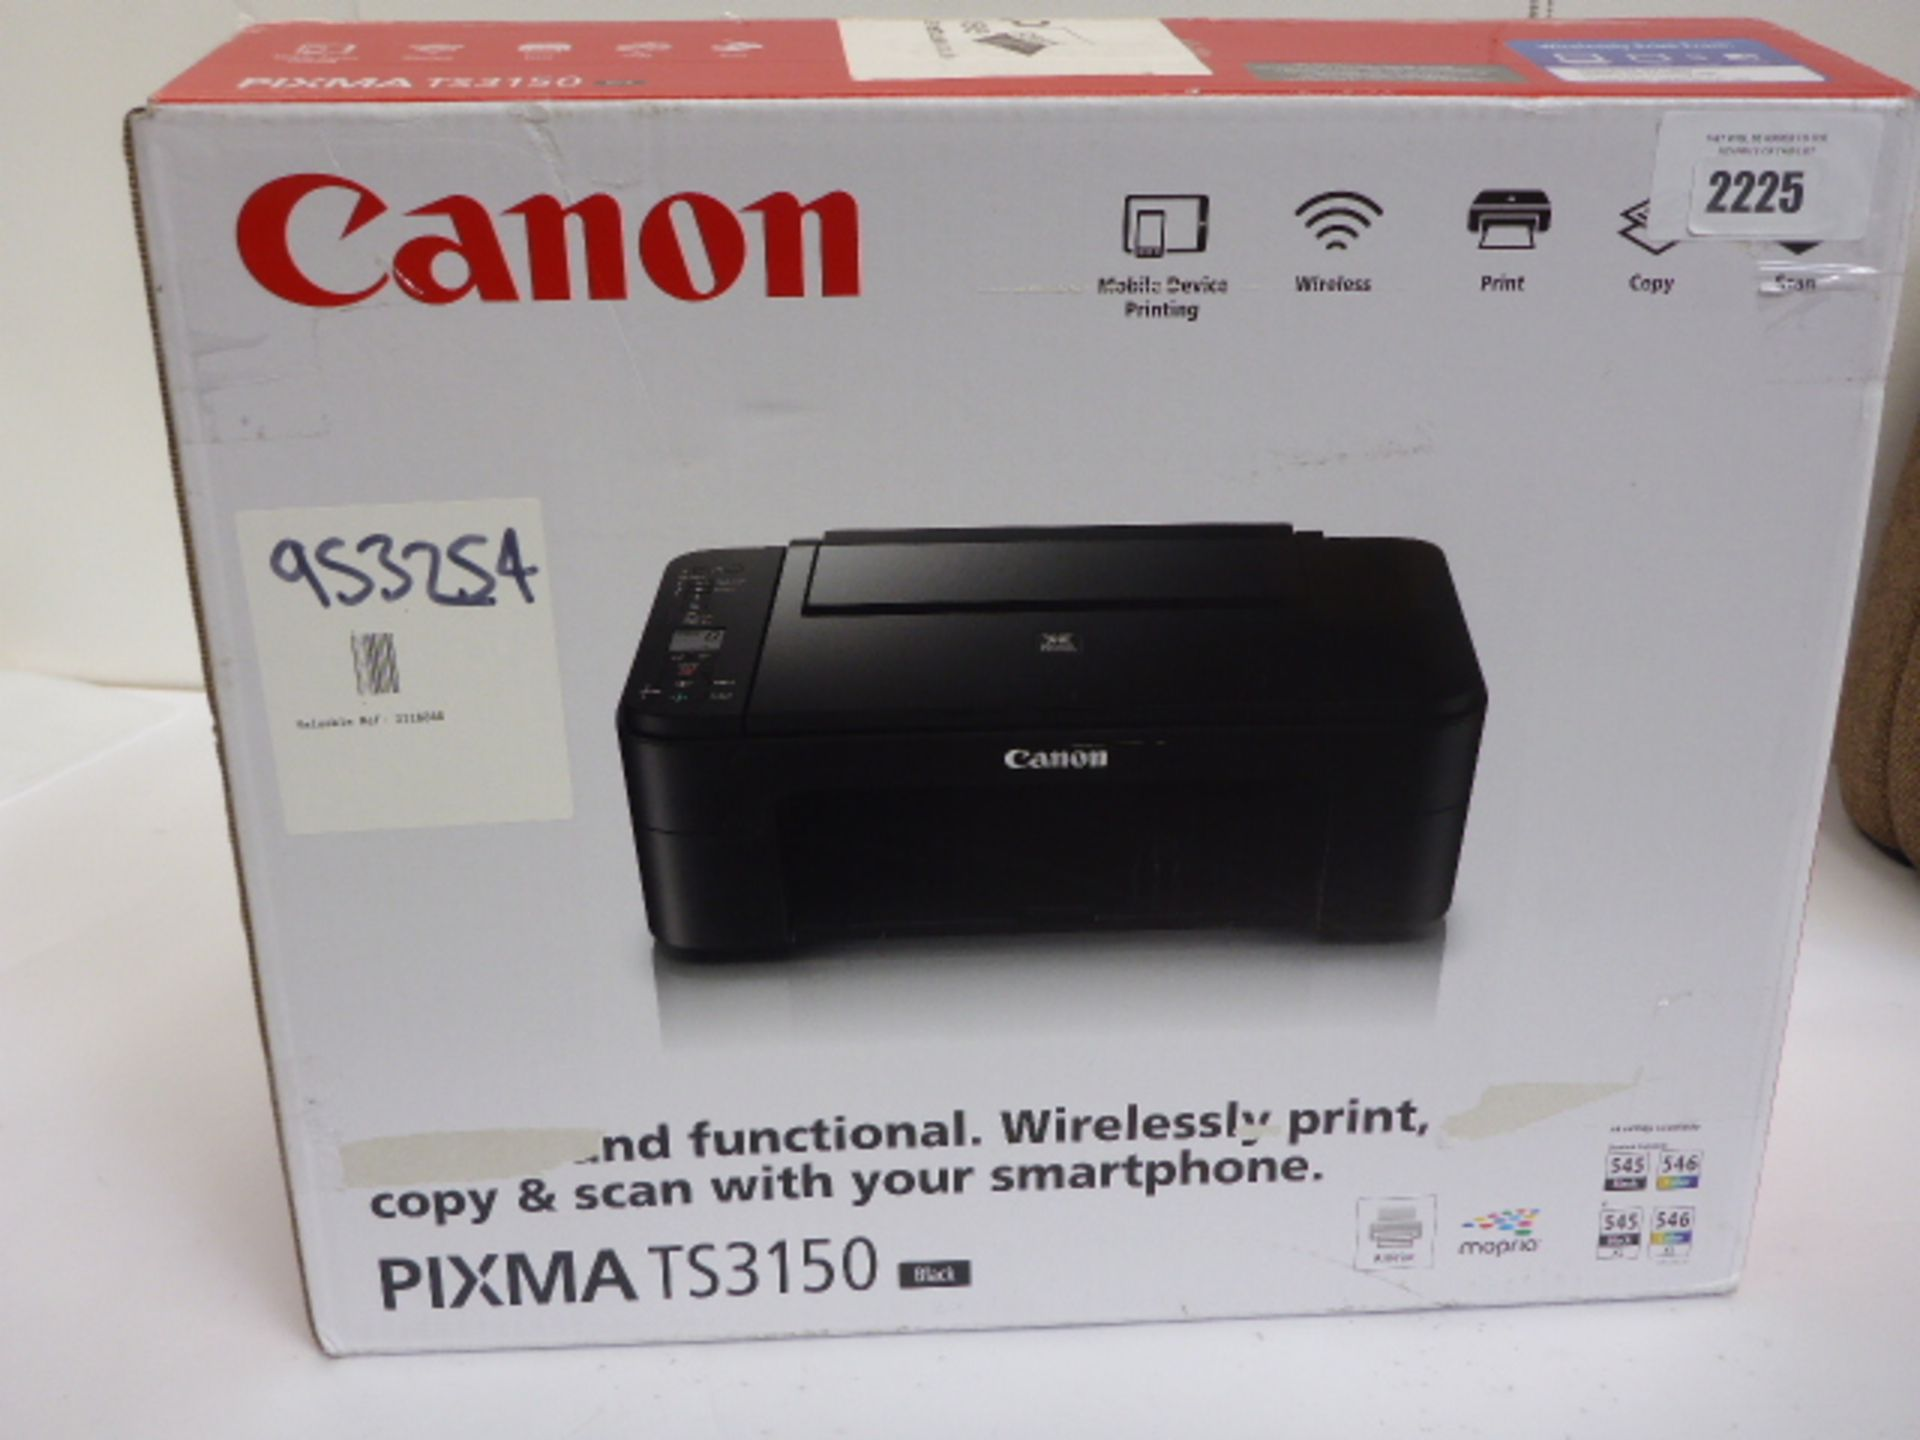 Lotto 2225 - Canon Pixma TS3150 all in one printer in box